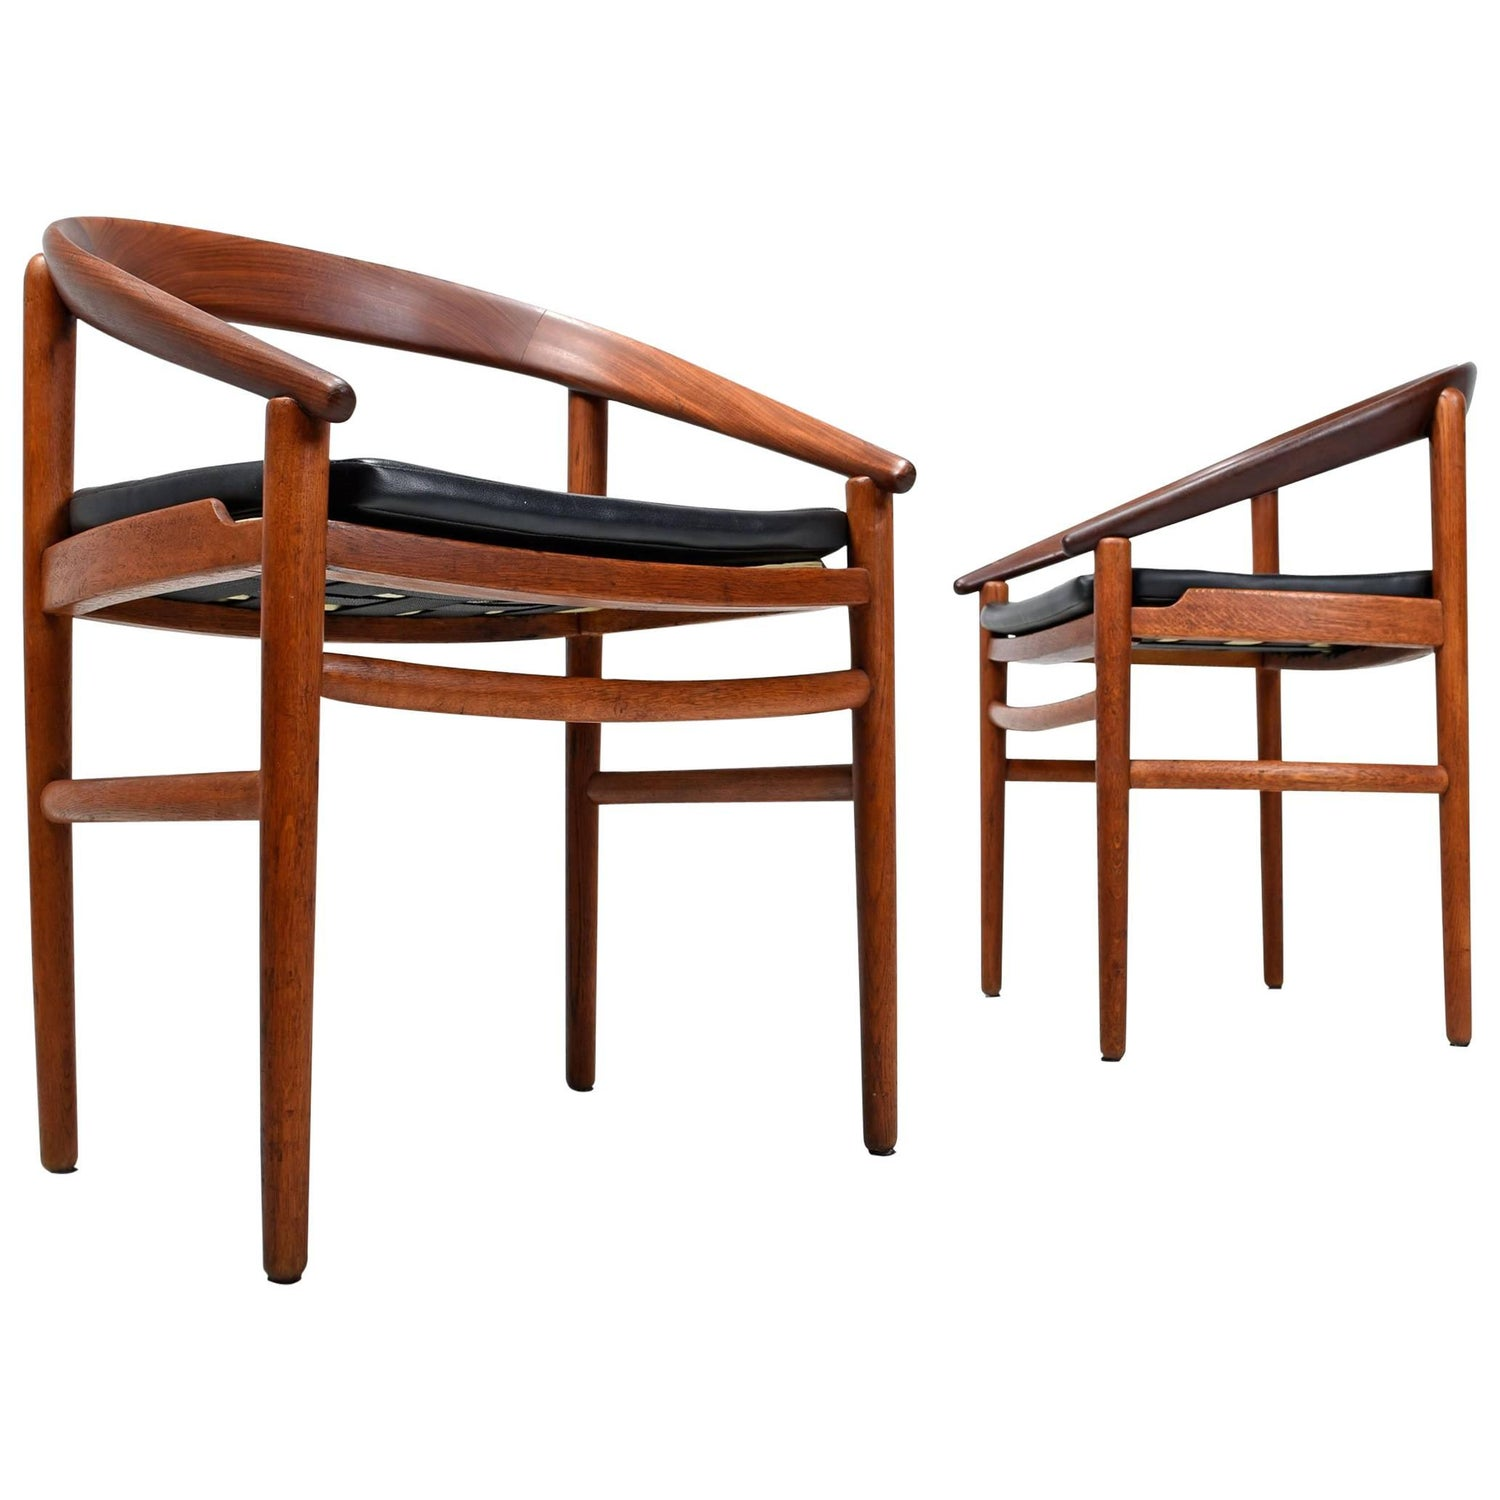 1950s Dining Room Chairs 1 202 For Sale at 1stdibs